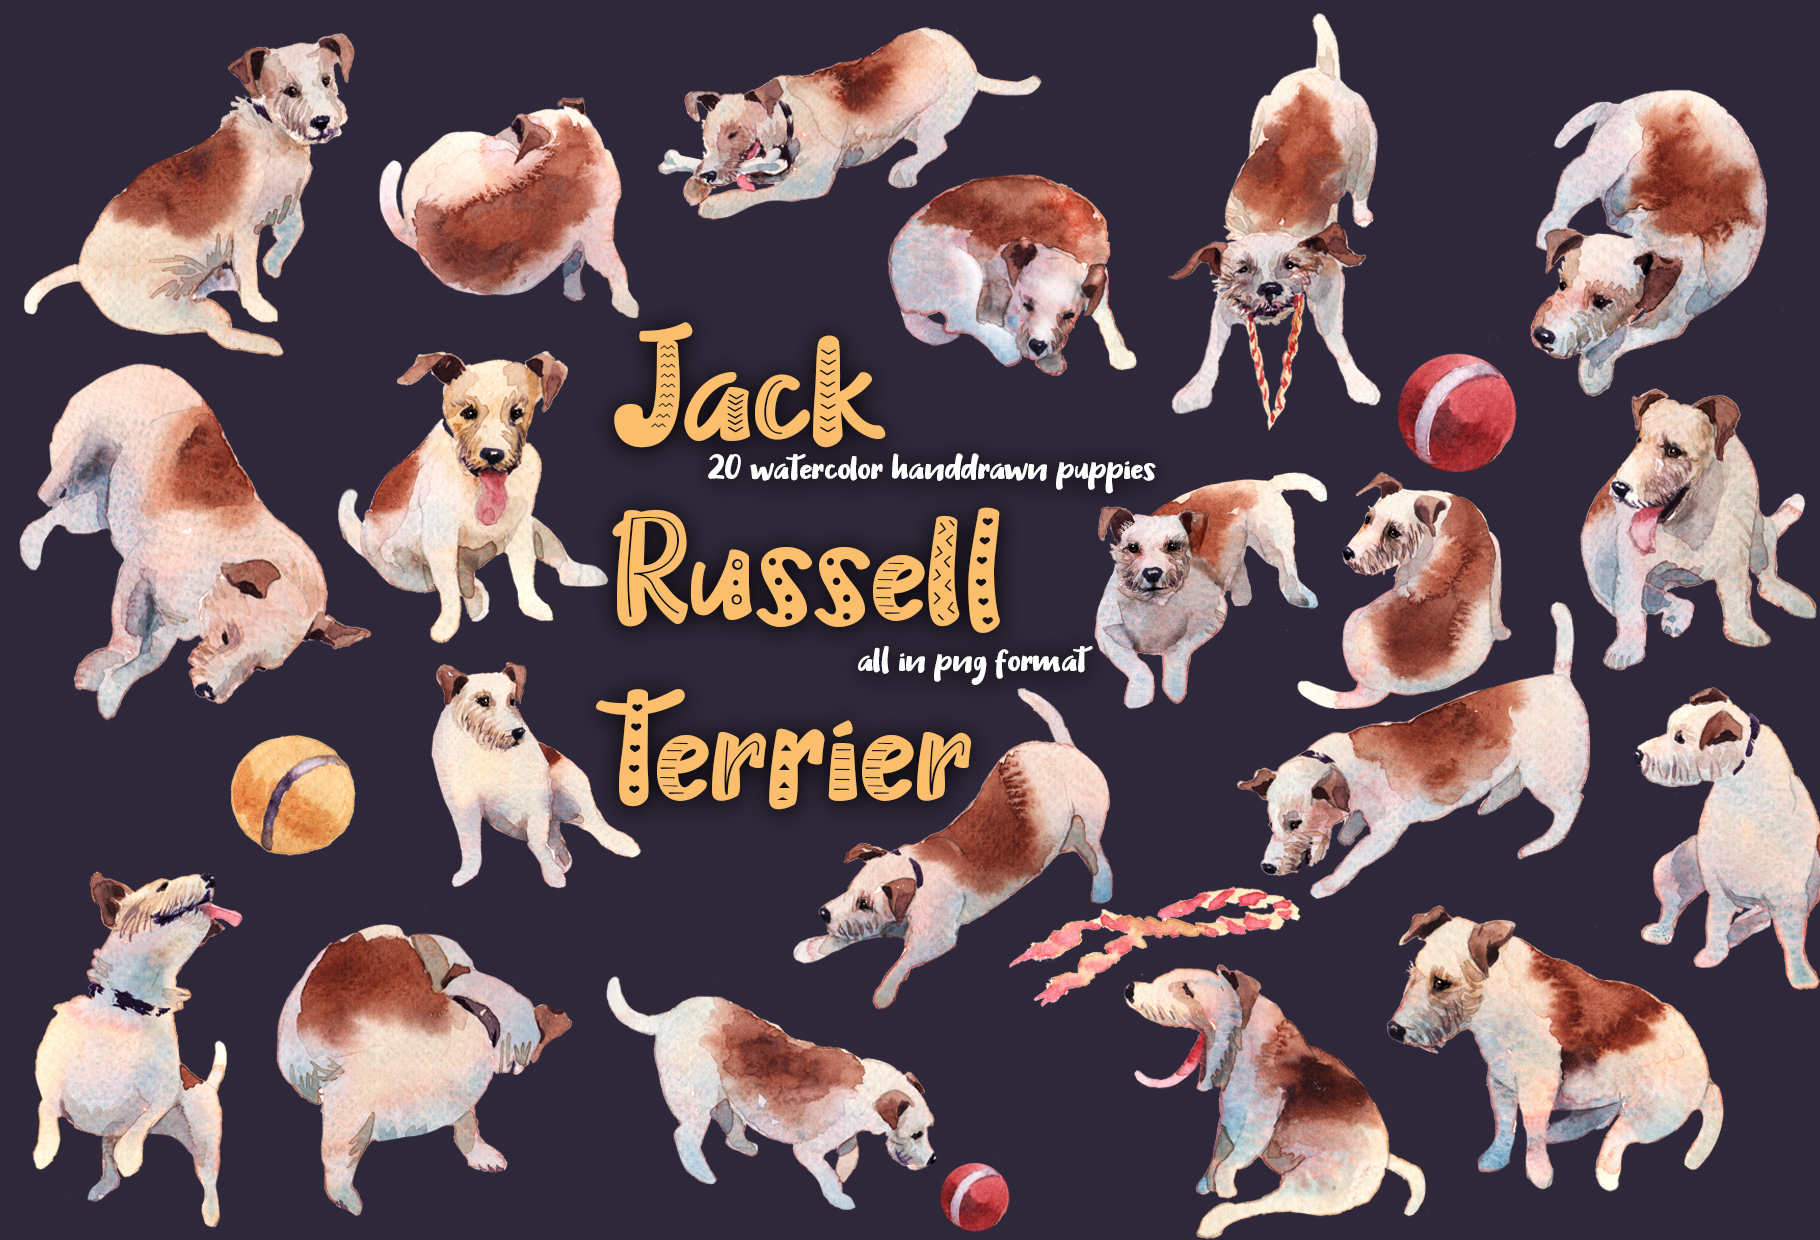 Jack Russell Terrier example image 1